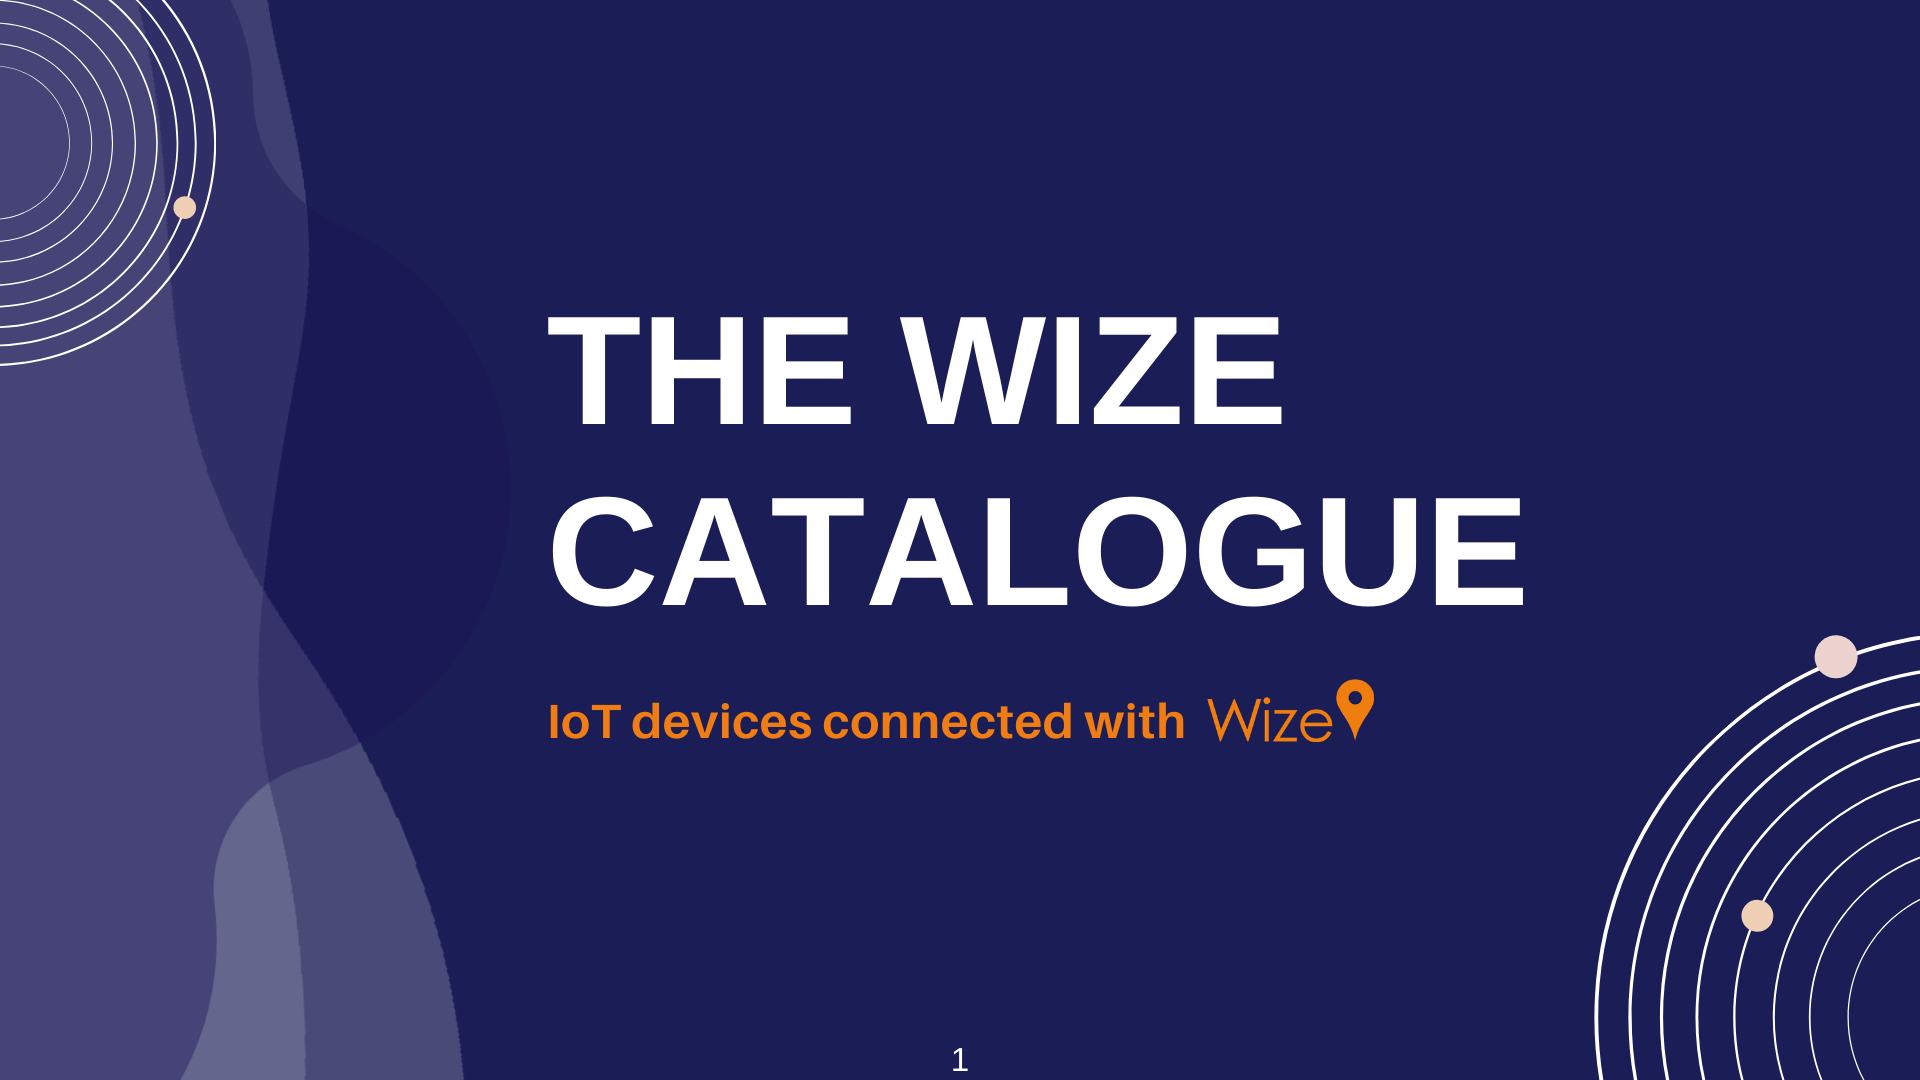 The Wize Catalogue